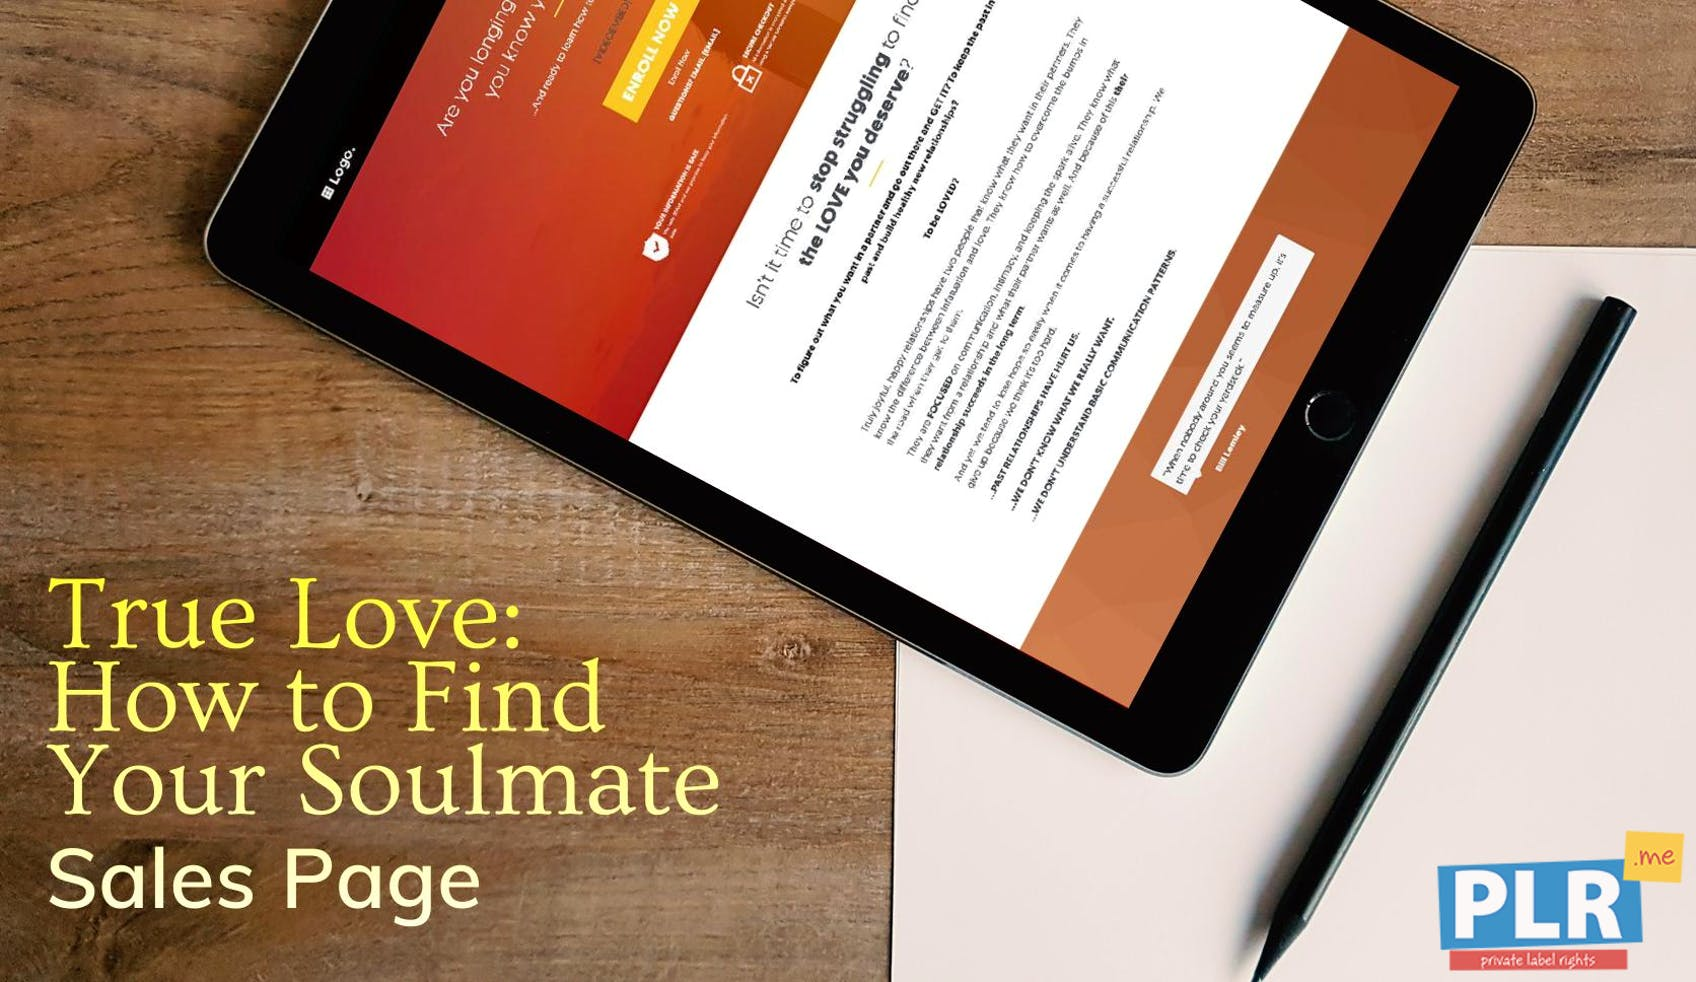 True Love: How To Find Your Soulmate - Sales Page